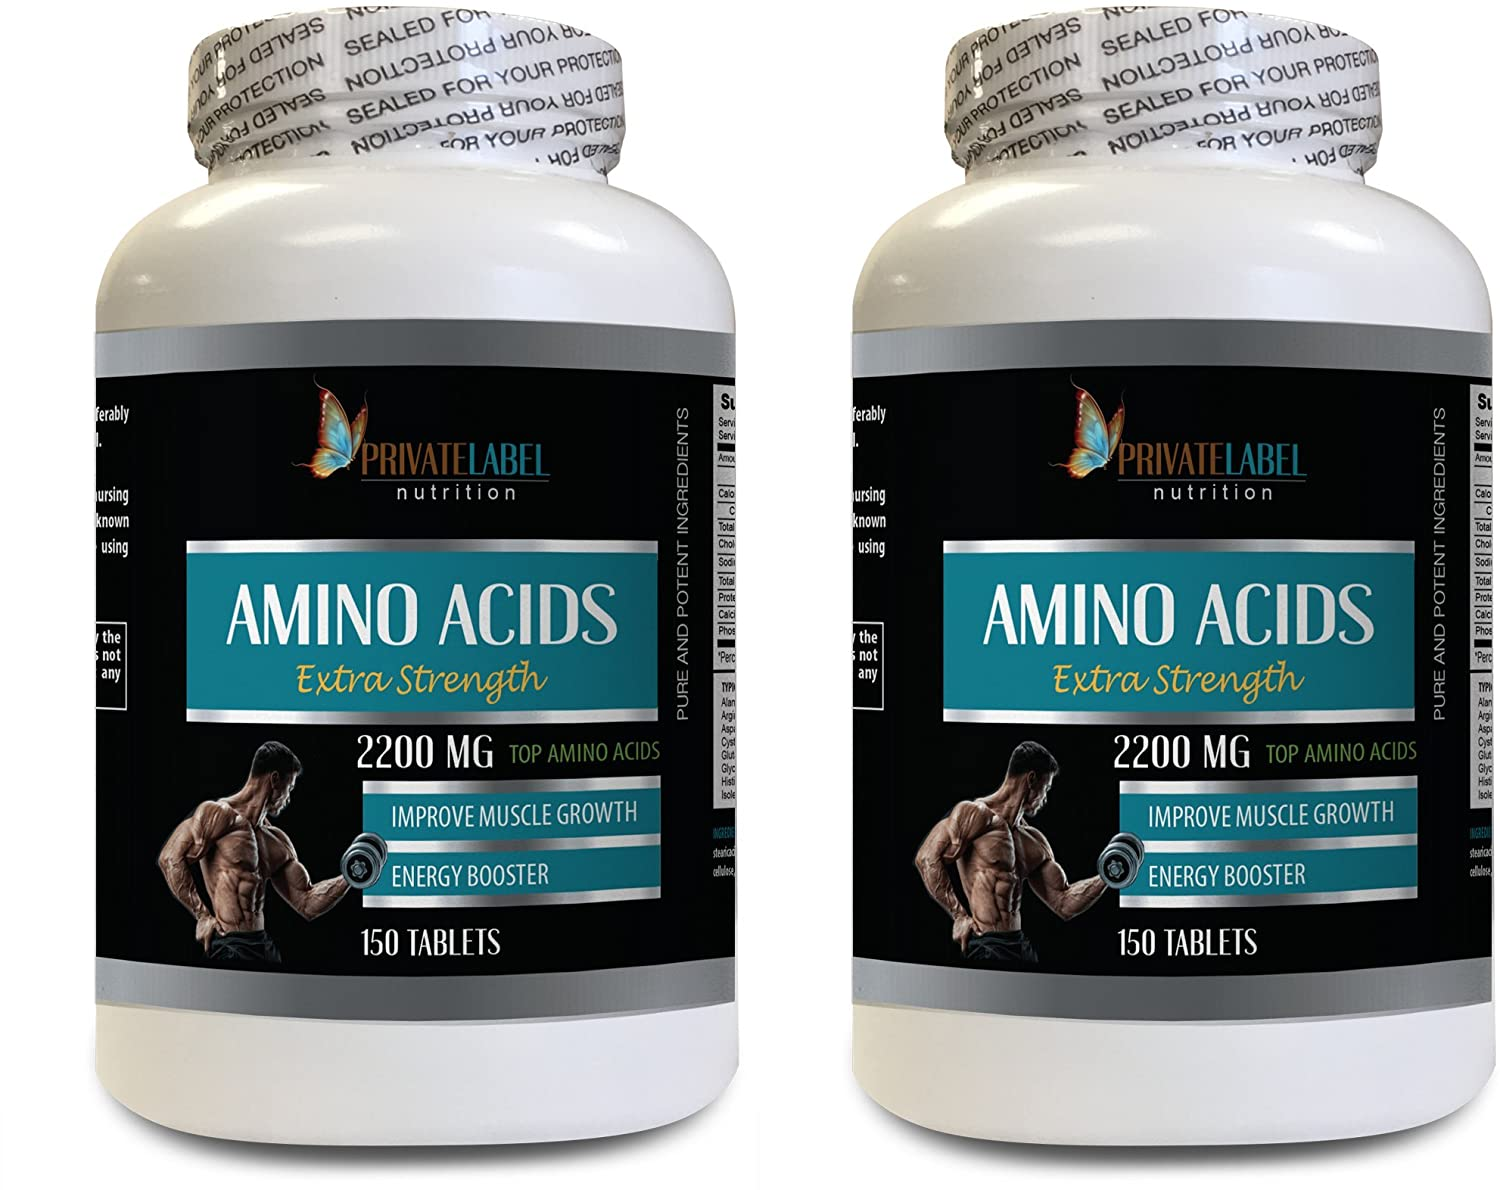 pre Workout Plus Fat Burner - Amino ACIDS Extra Strength 2200MG - Amino acids Muscle Recovery - 2 Bottles 300 Tablets